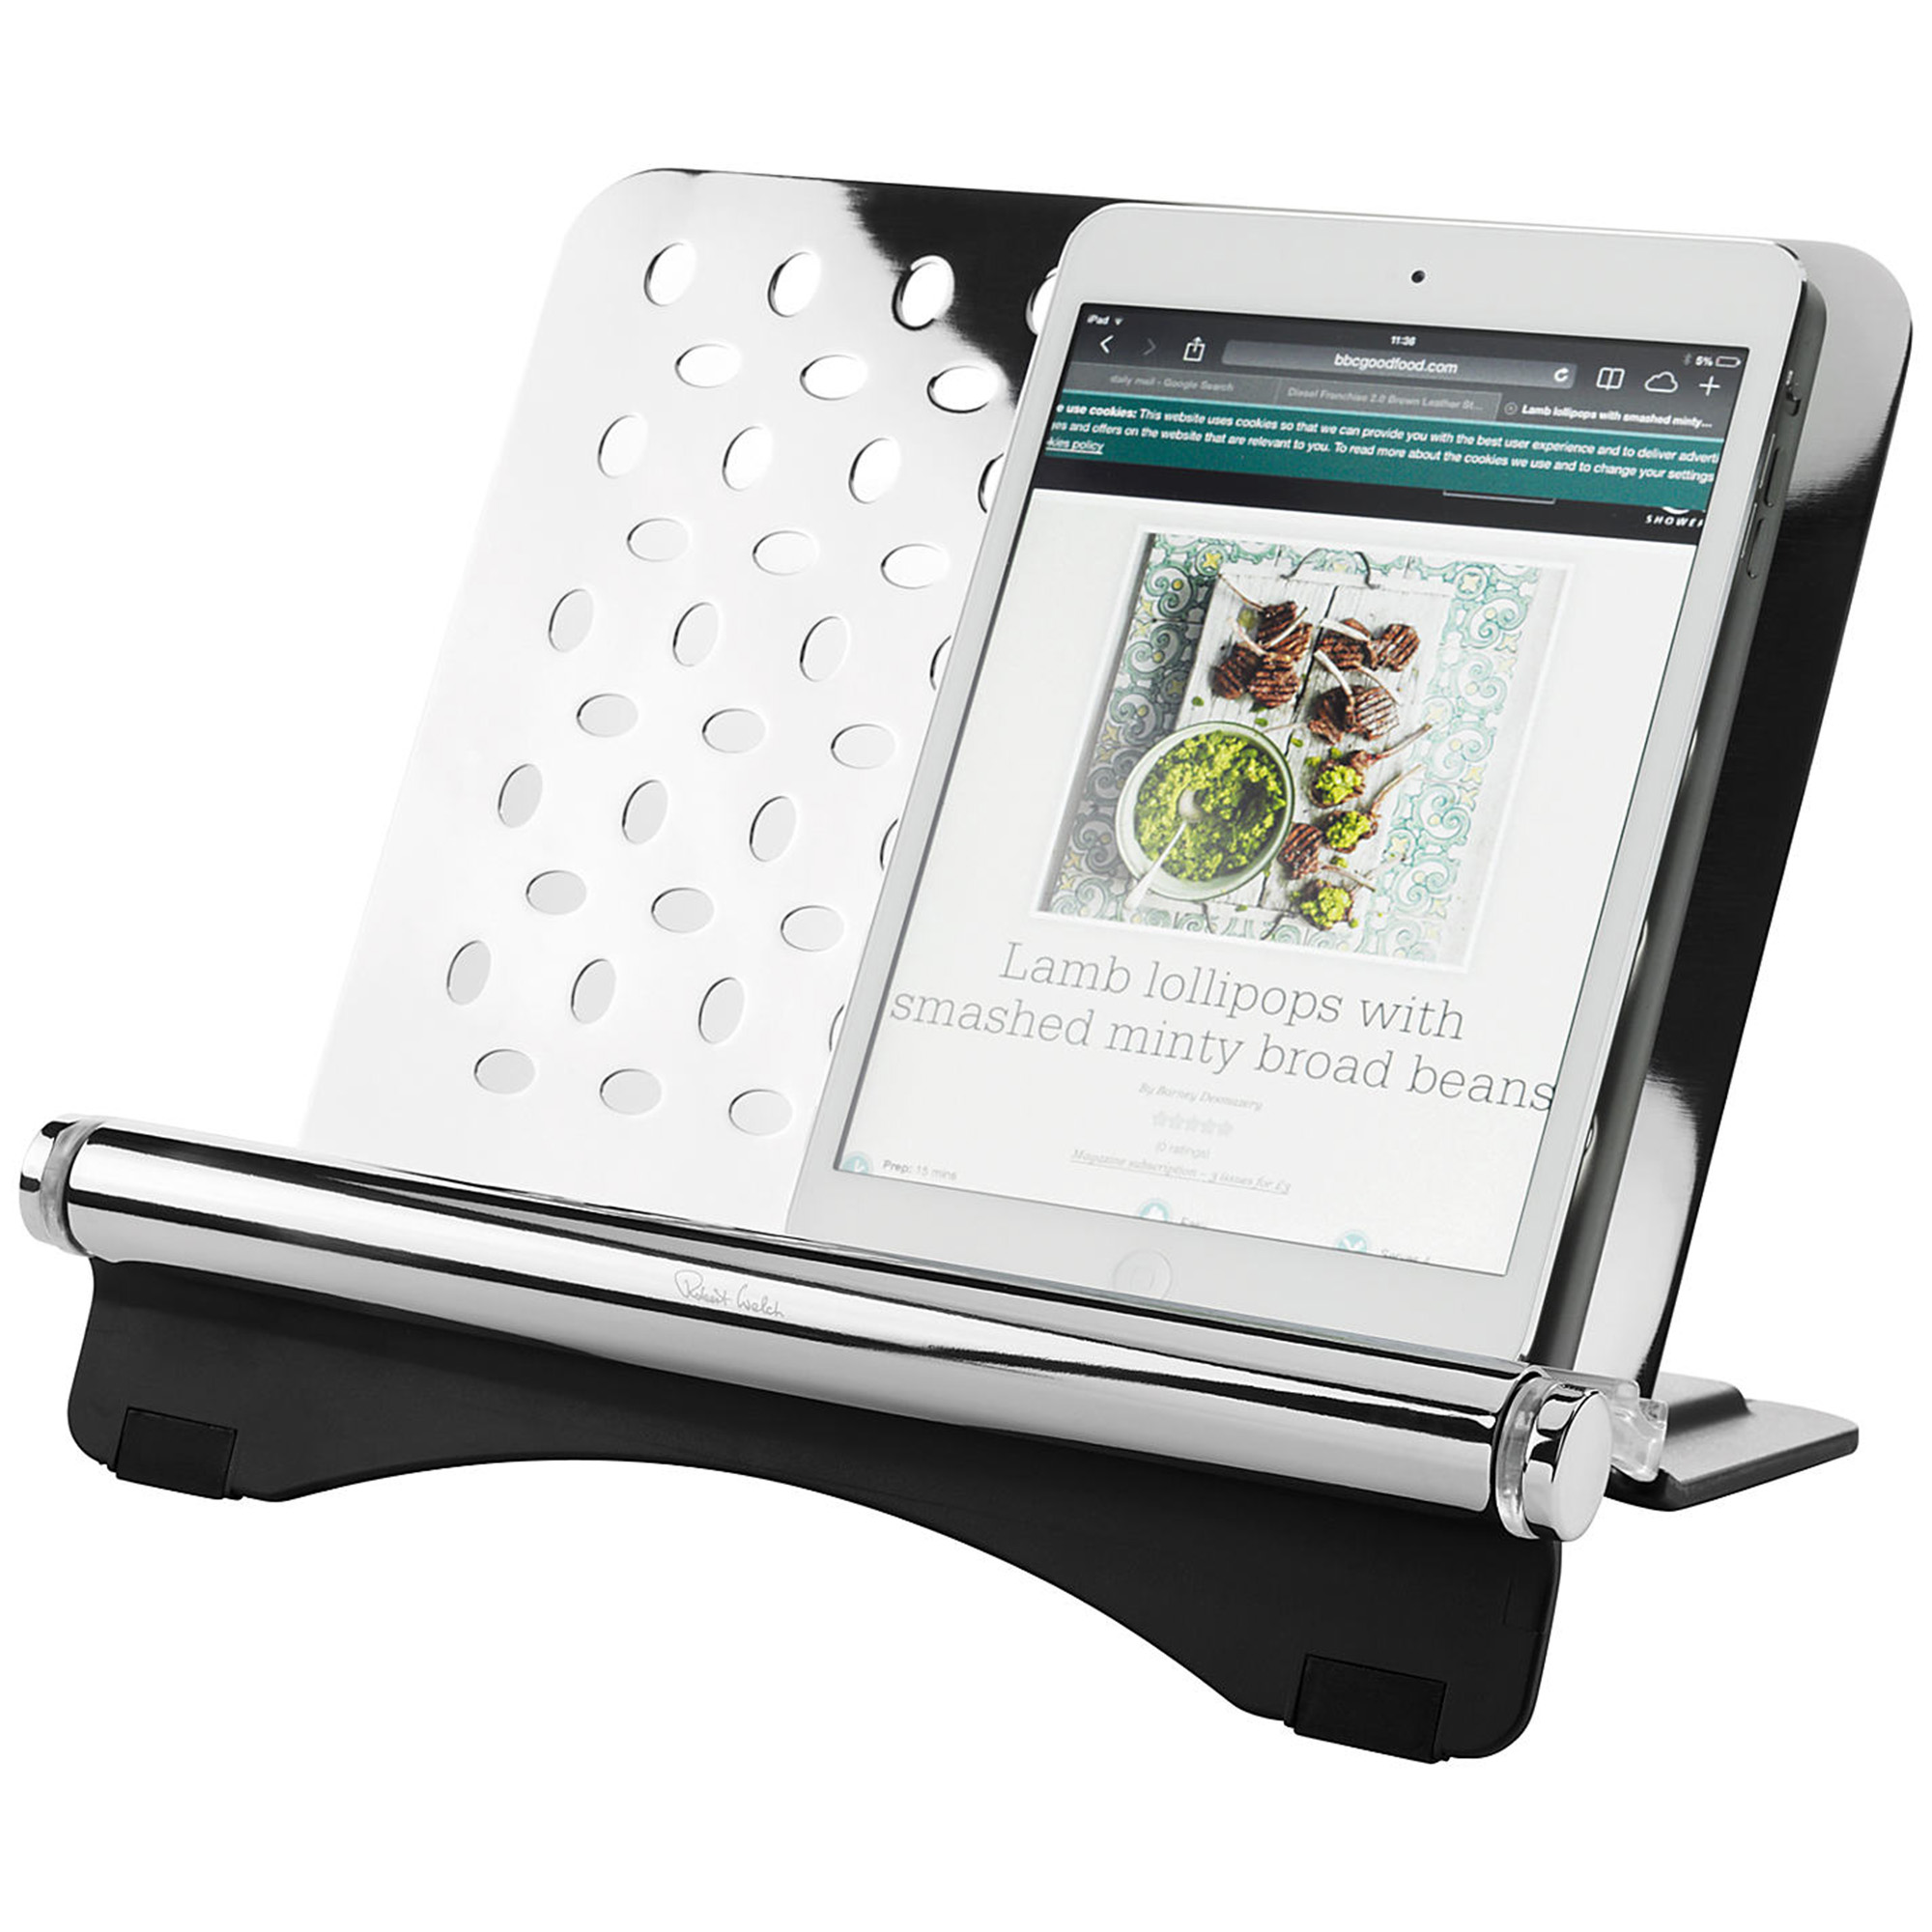 SIGNATURE COOK BOOK STAND